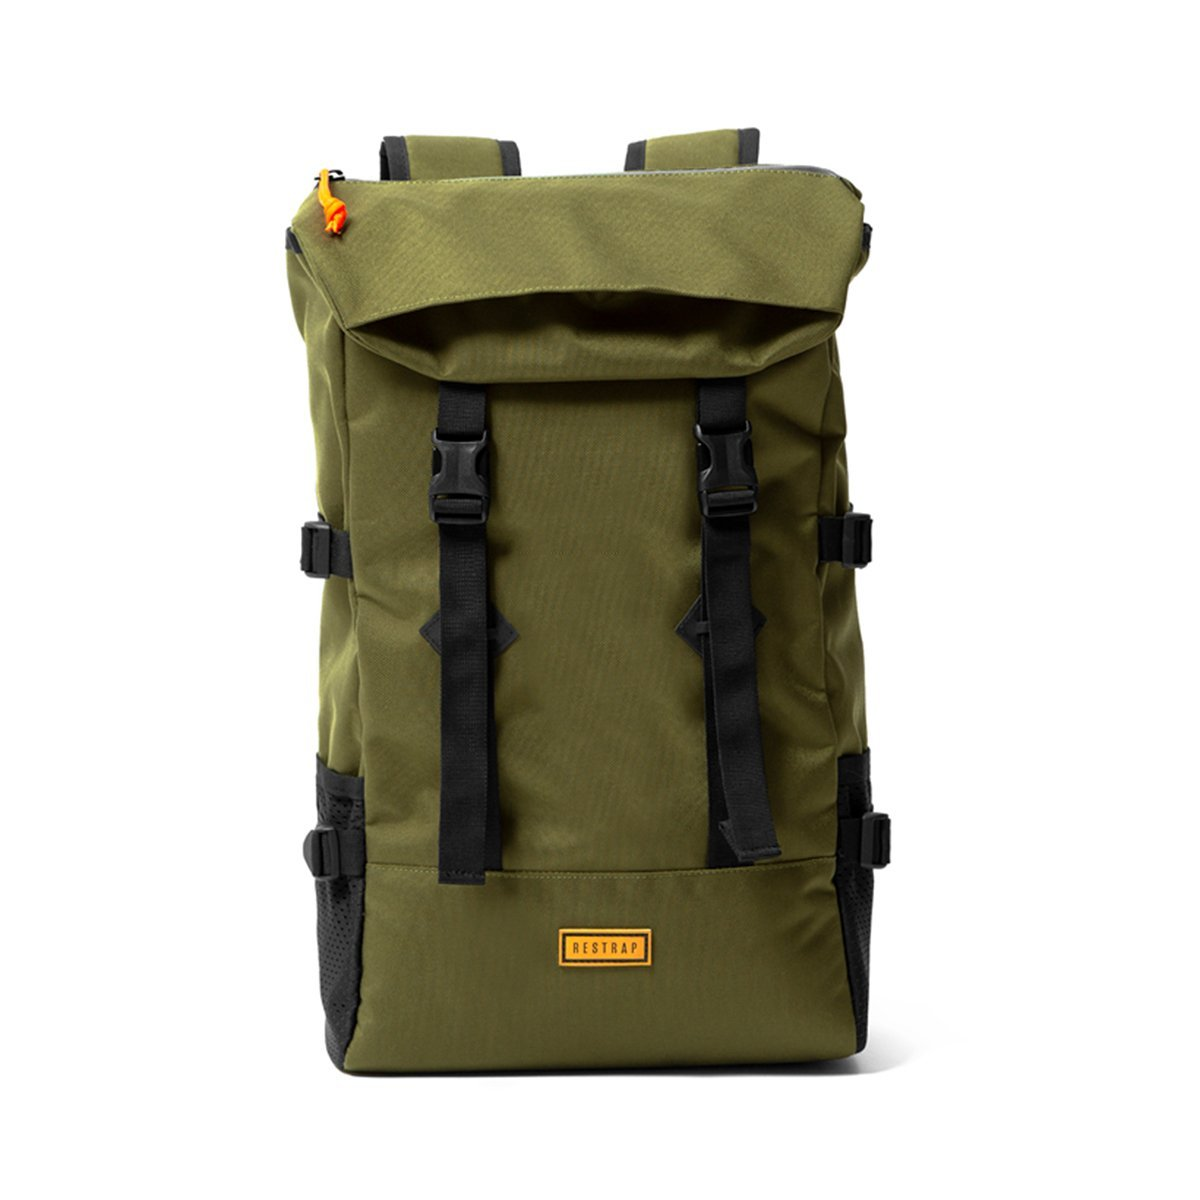 Restrap | Hilltop Backpack | Waterproof Cycling Bag | Commuter Bag | Olive